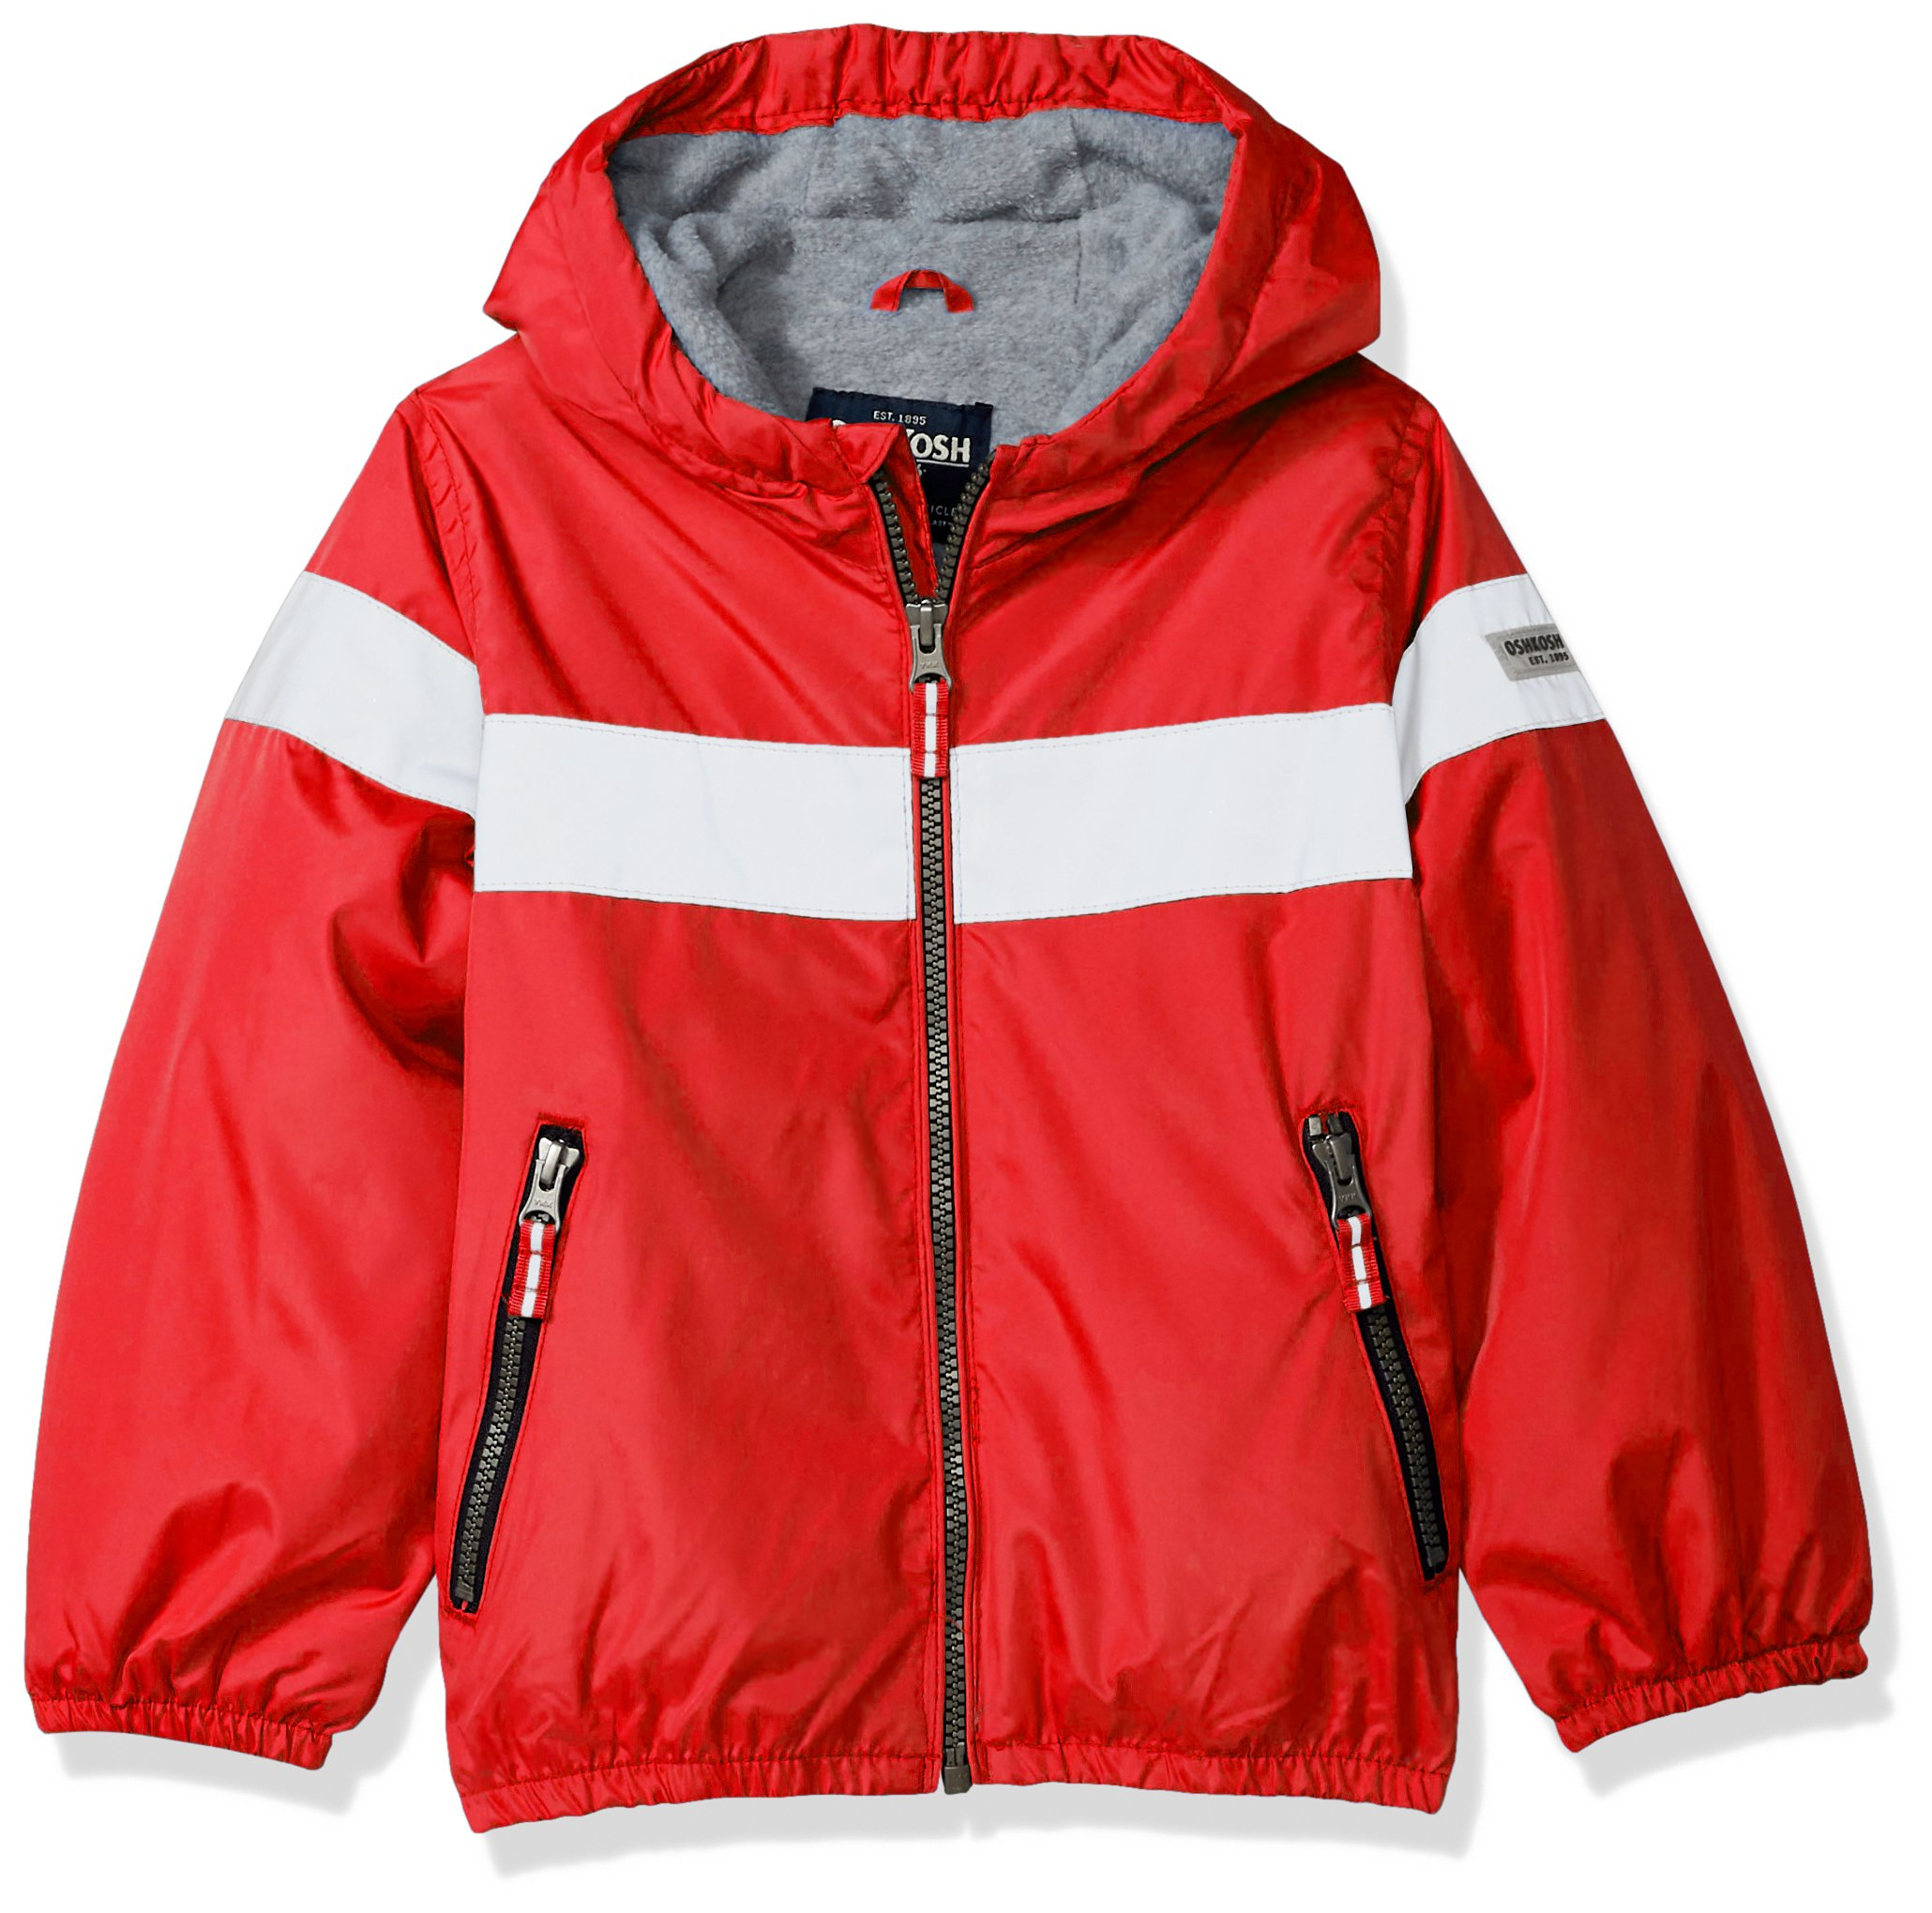 Osh Kosh Boys' Little Midweight Active Fleece Lined Jacket, red, 5/6 by OshKosh B'Gosh